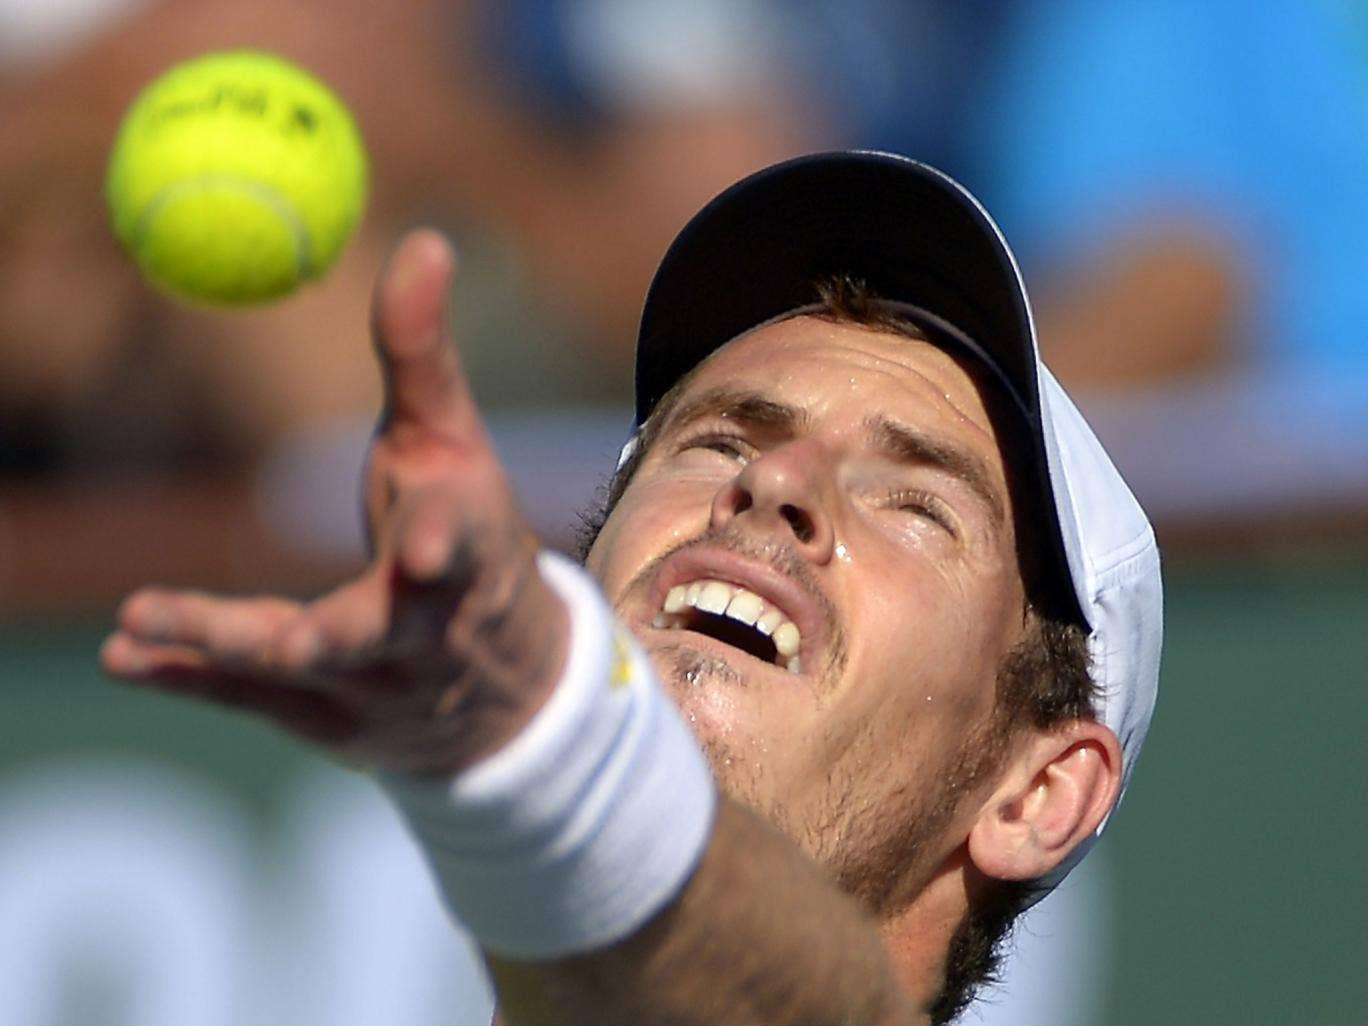 Off the ball: Andy Murray served eight double faults on his way to defeat